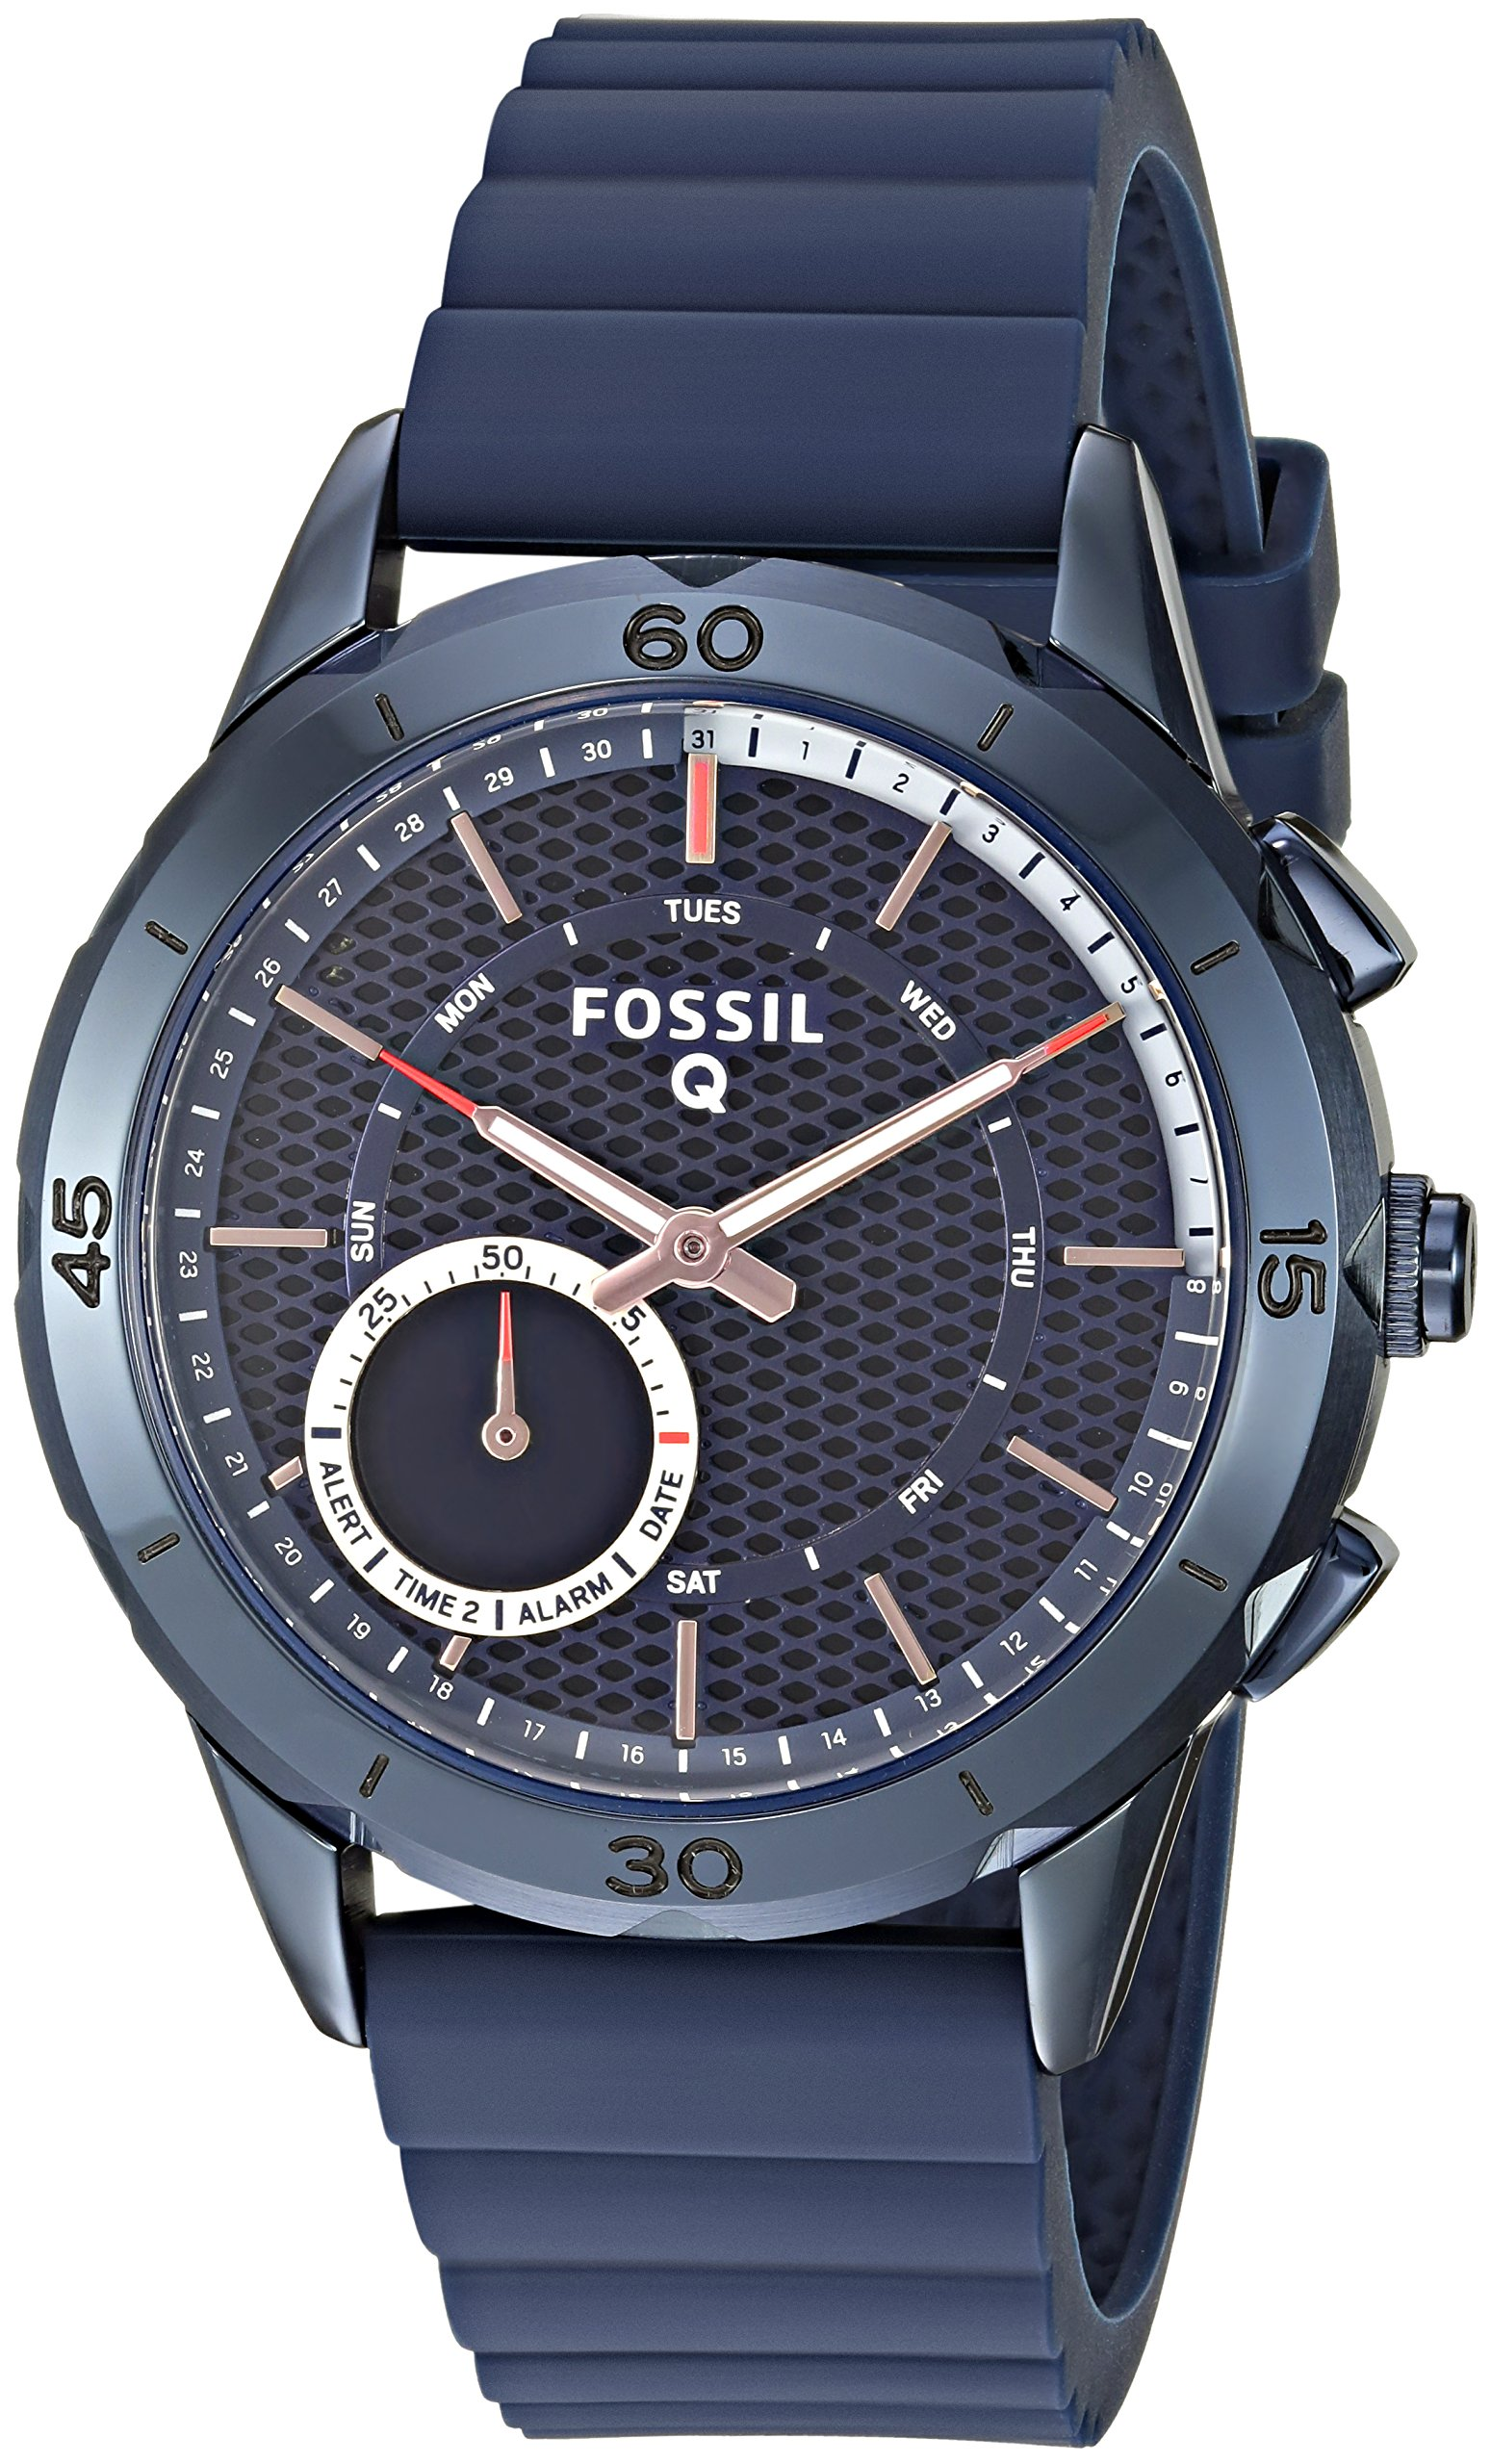 Fossil Hybrid Smartwatch - Q Modern Pursuit Navy Blue